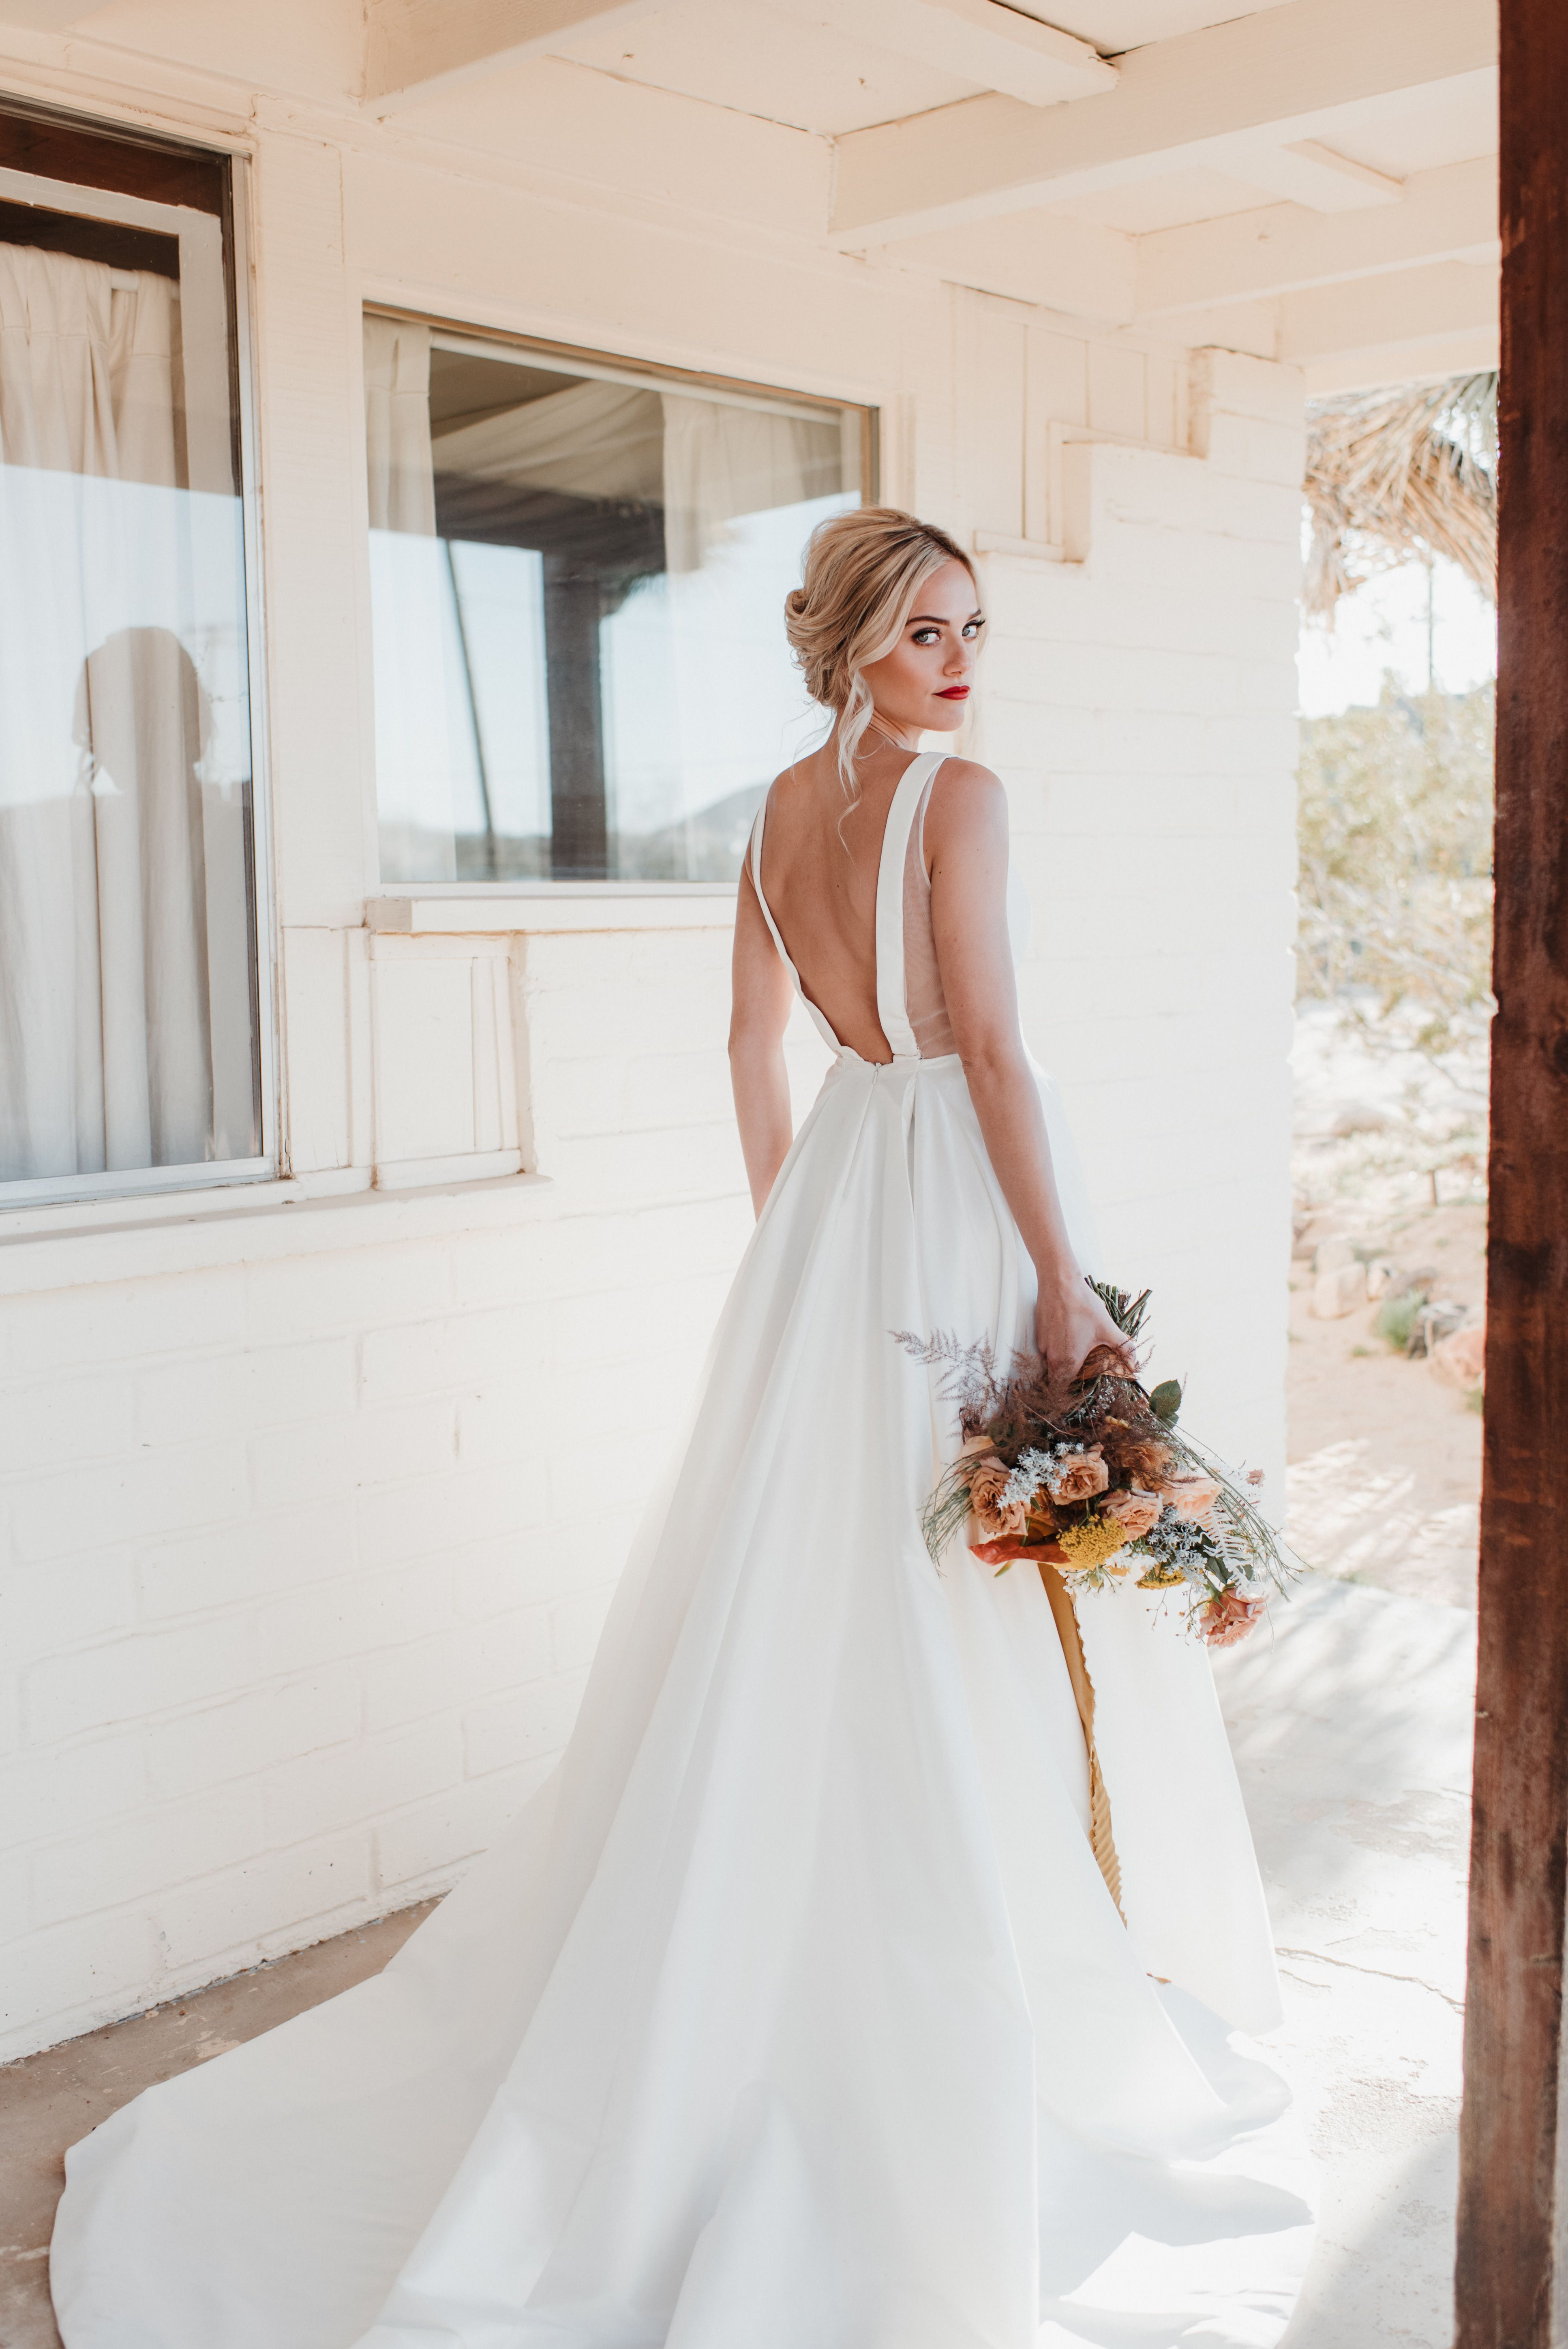 Jenny By Jenny Yoo Octavia Gown Country Style Wedding Dresses Wedding Dress Inspiration Country Wedding Gowns [ 5794 x 3868 Pixel ]